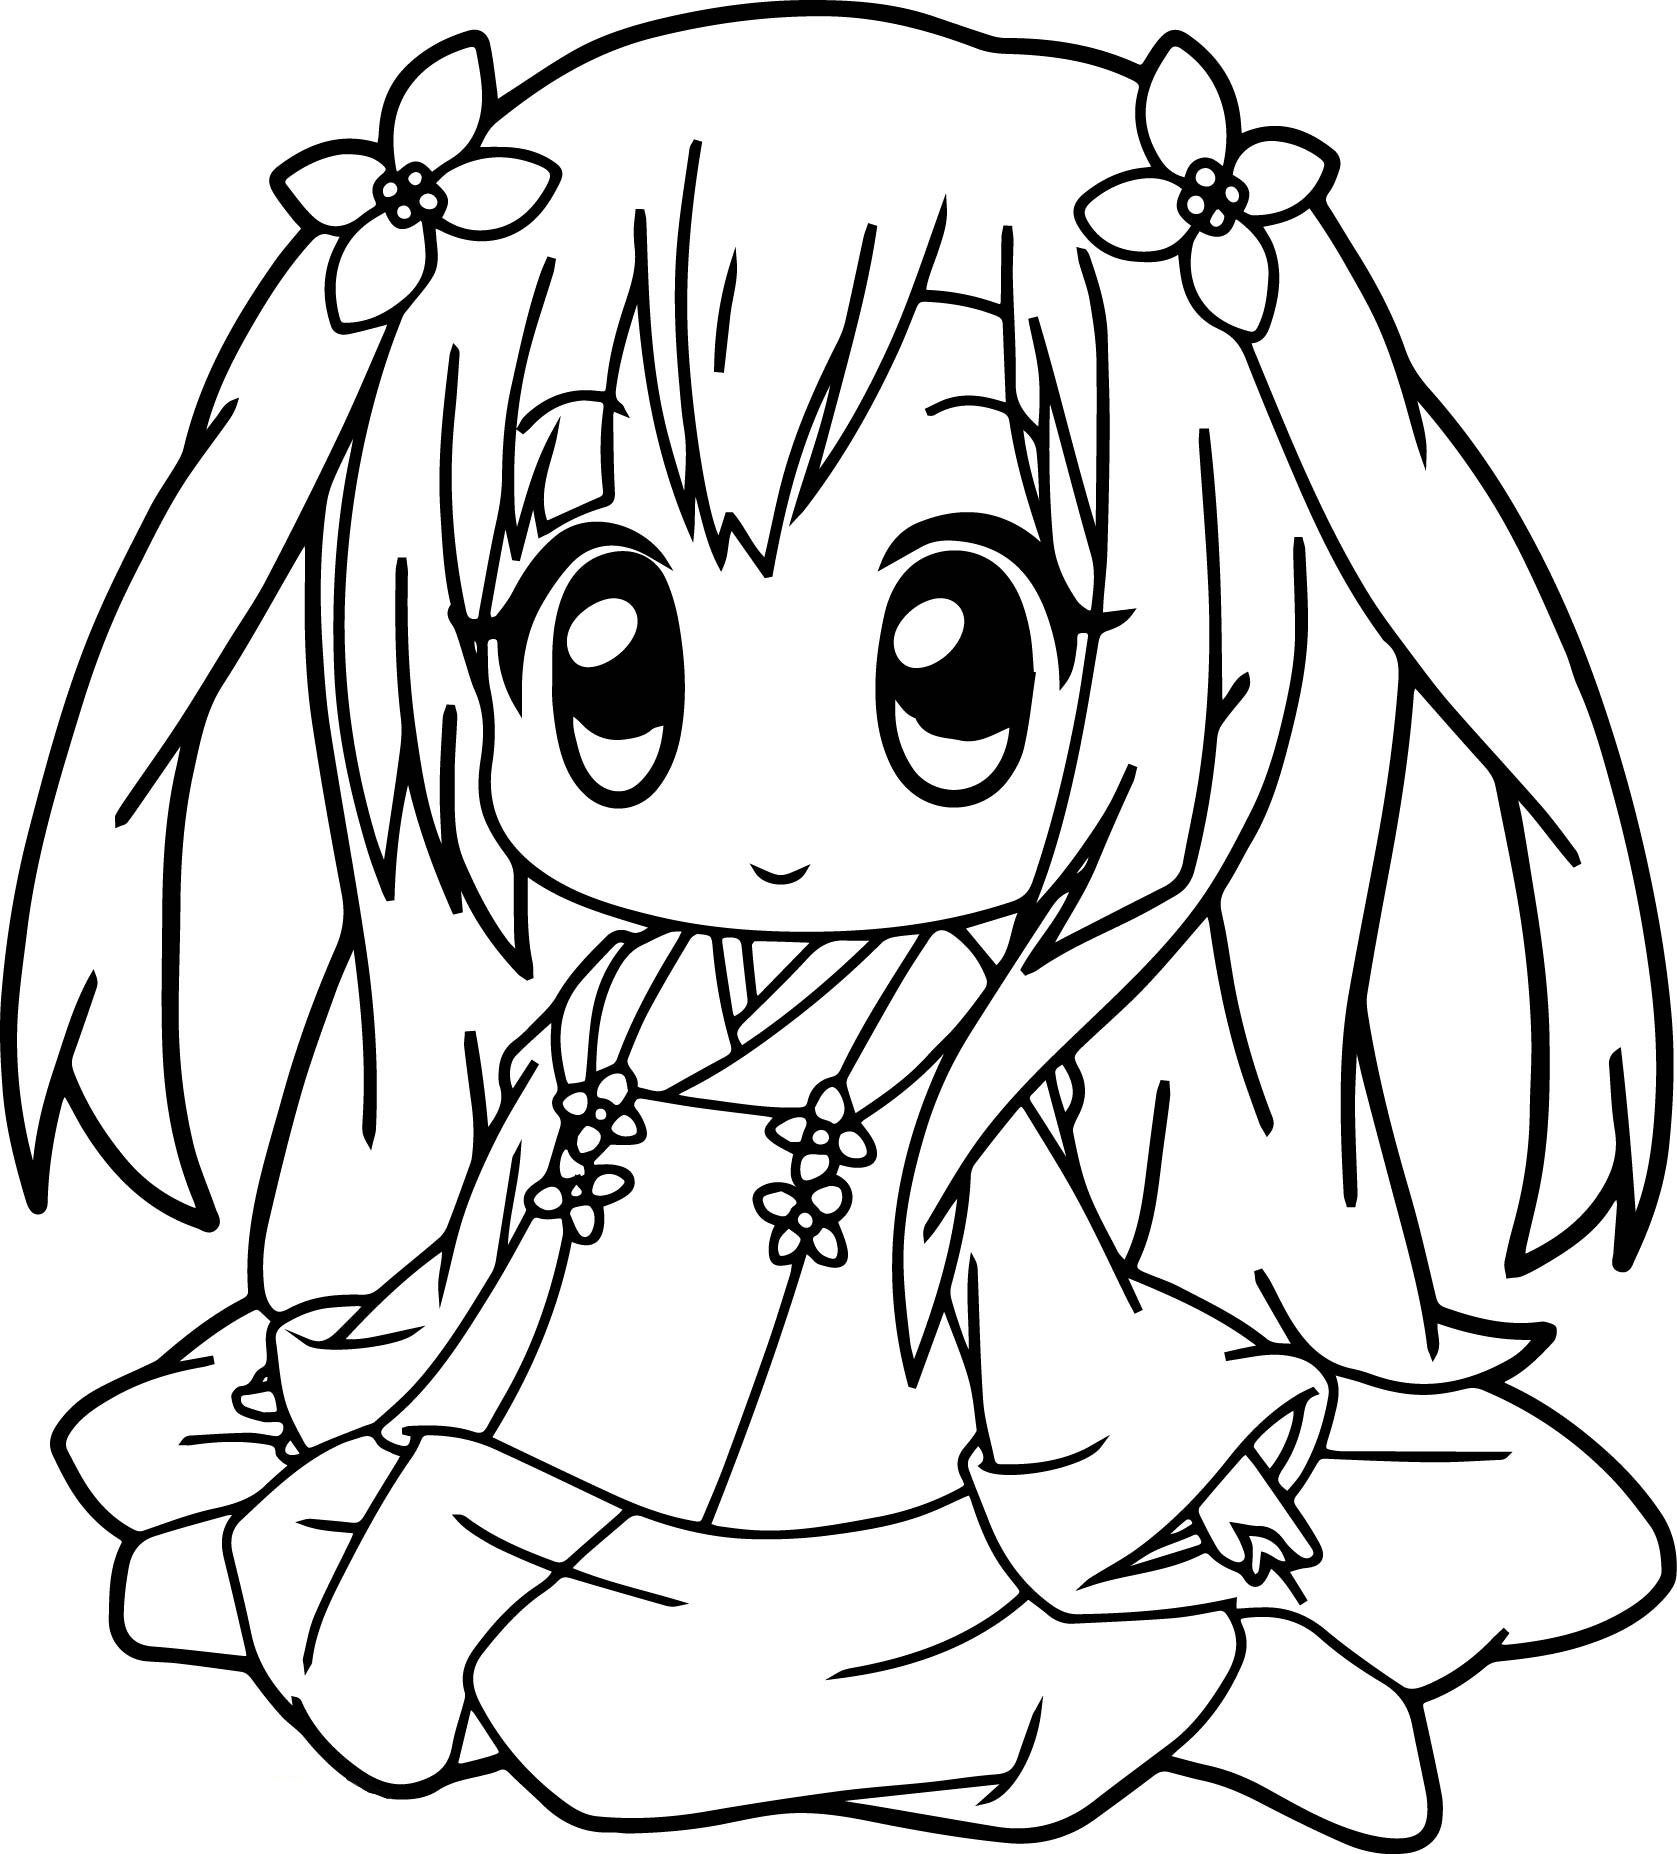 color anime anime coloring pages best coloring pages for kids anime color